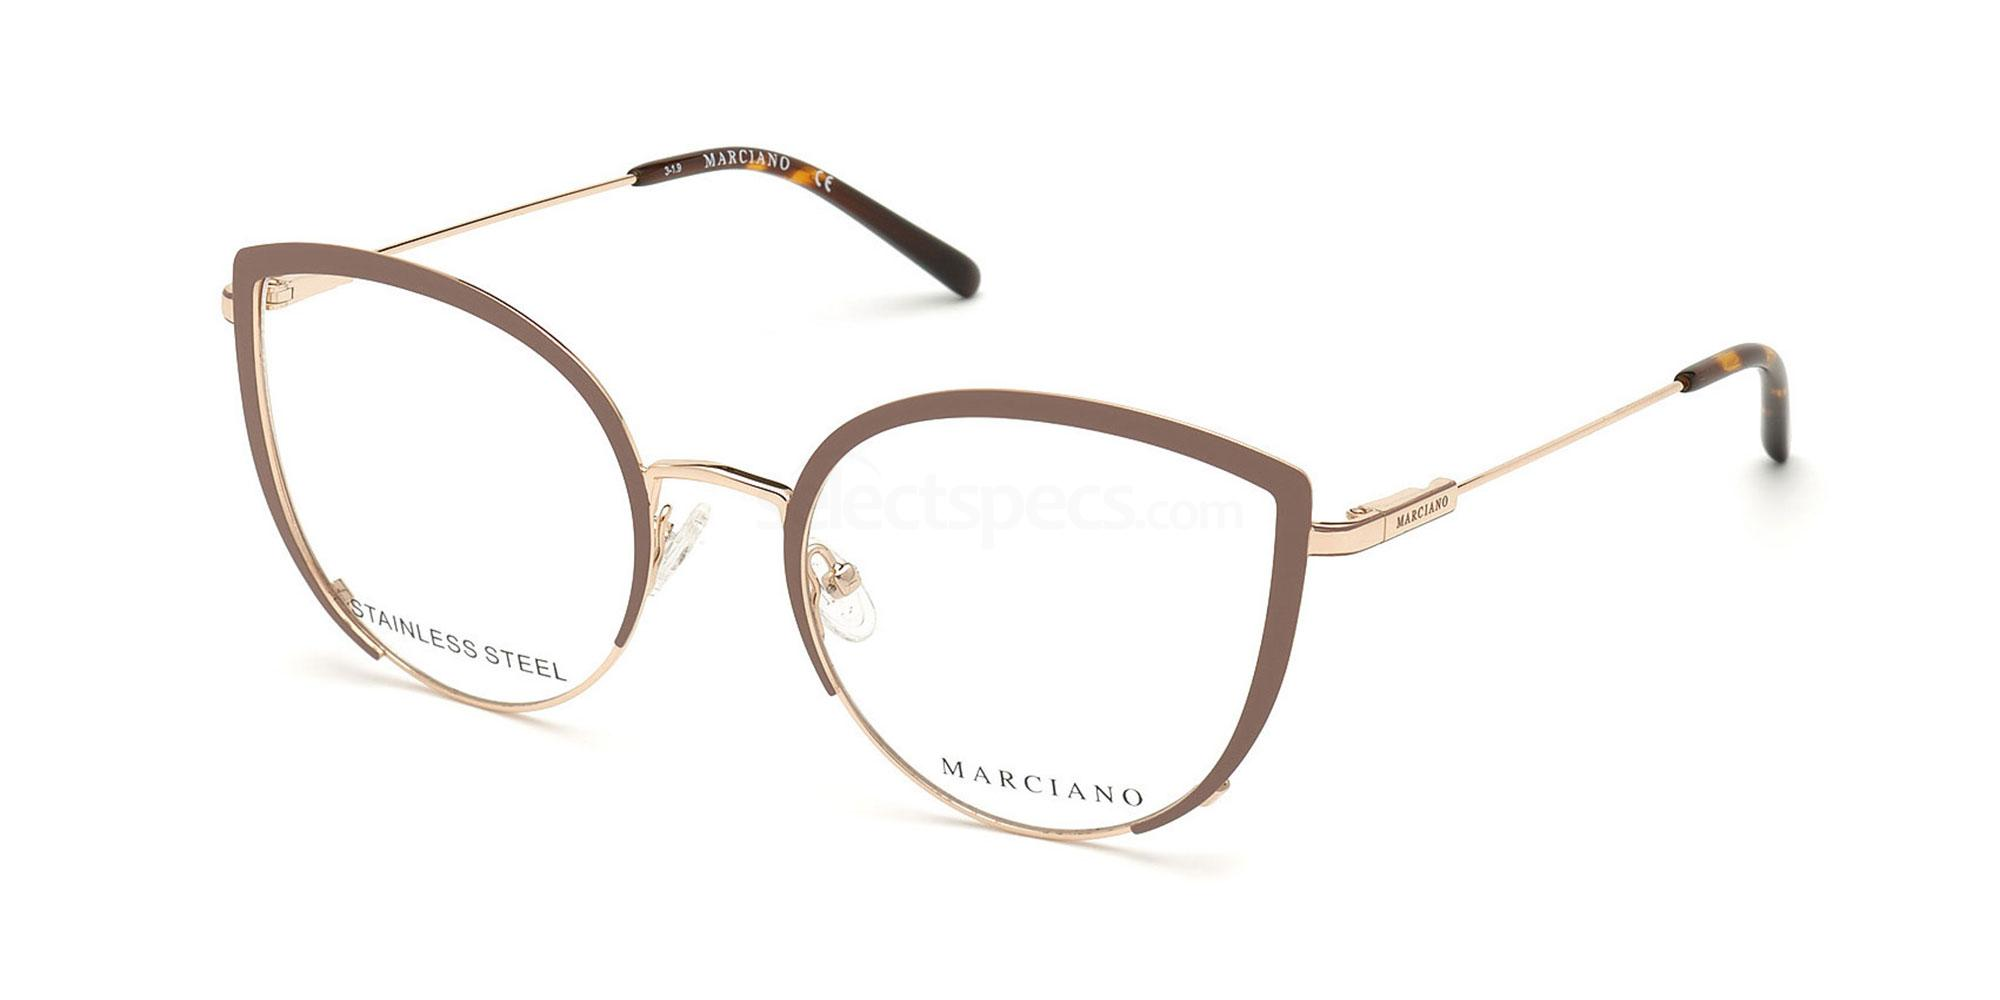 073 GM0350 Glasses, Guess by Marciano